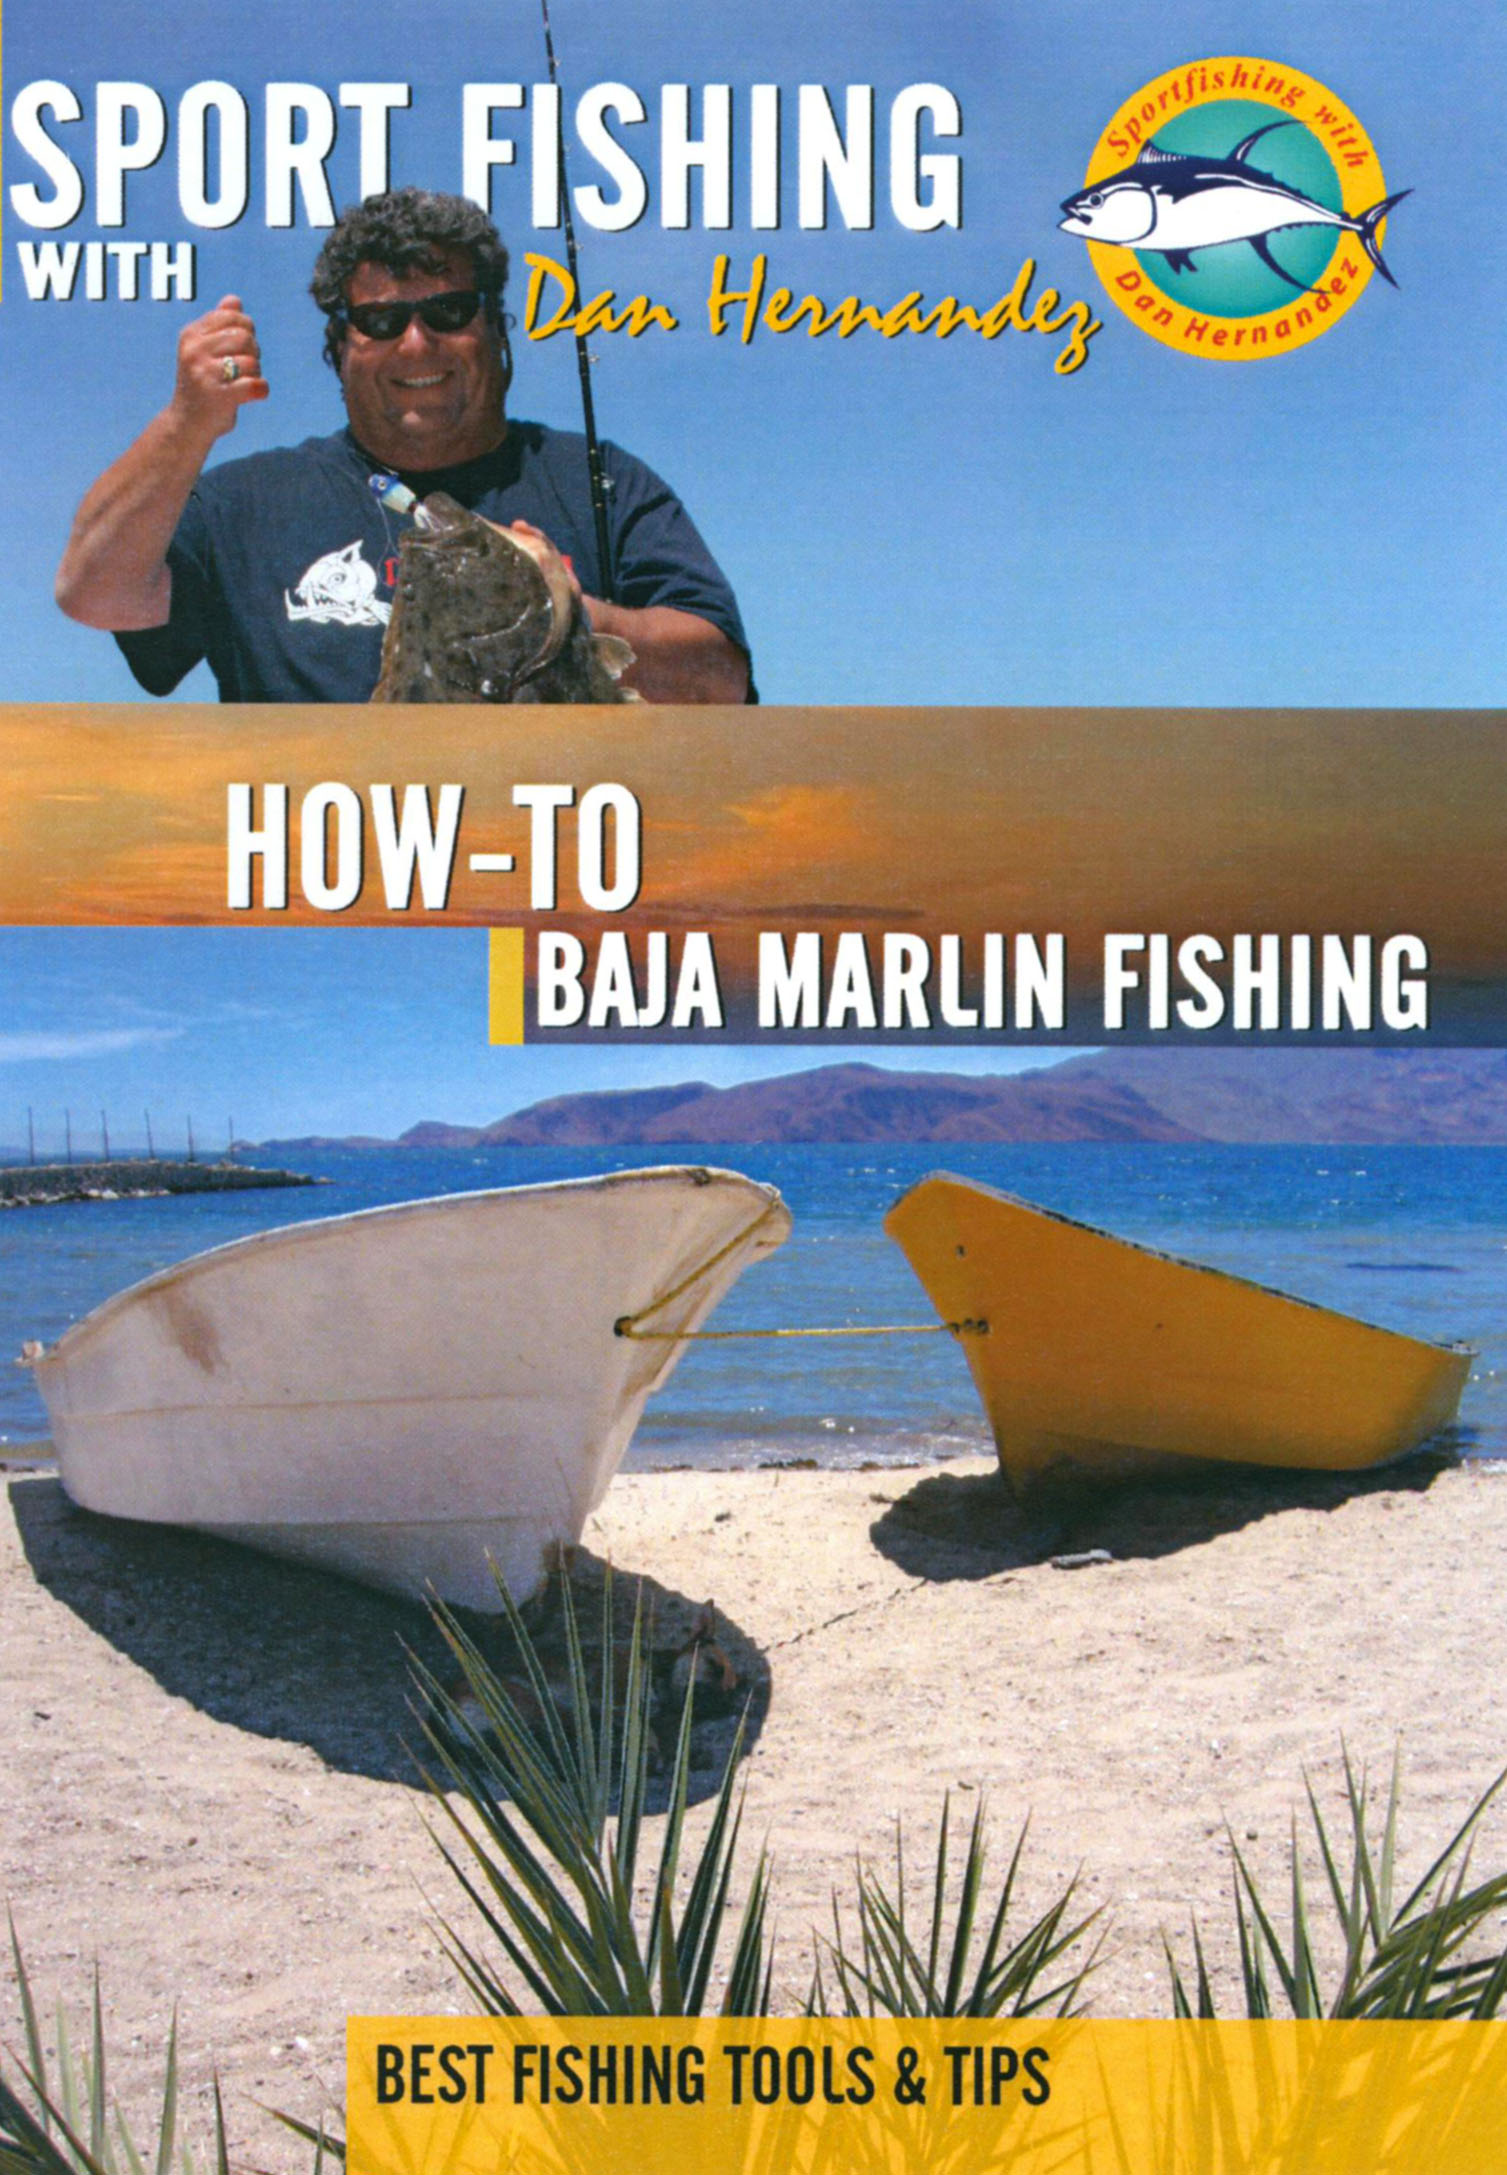 Sport Fishing With Dan Hernandez: How-To Baja Marlin Fishing